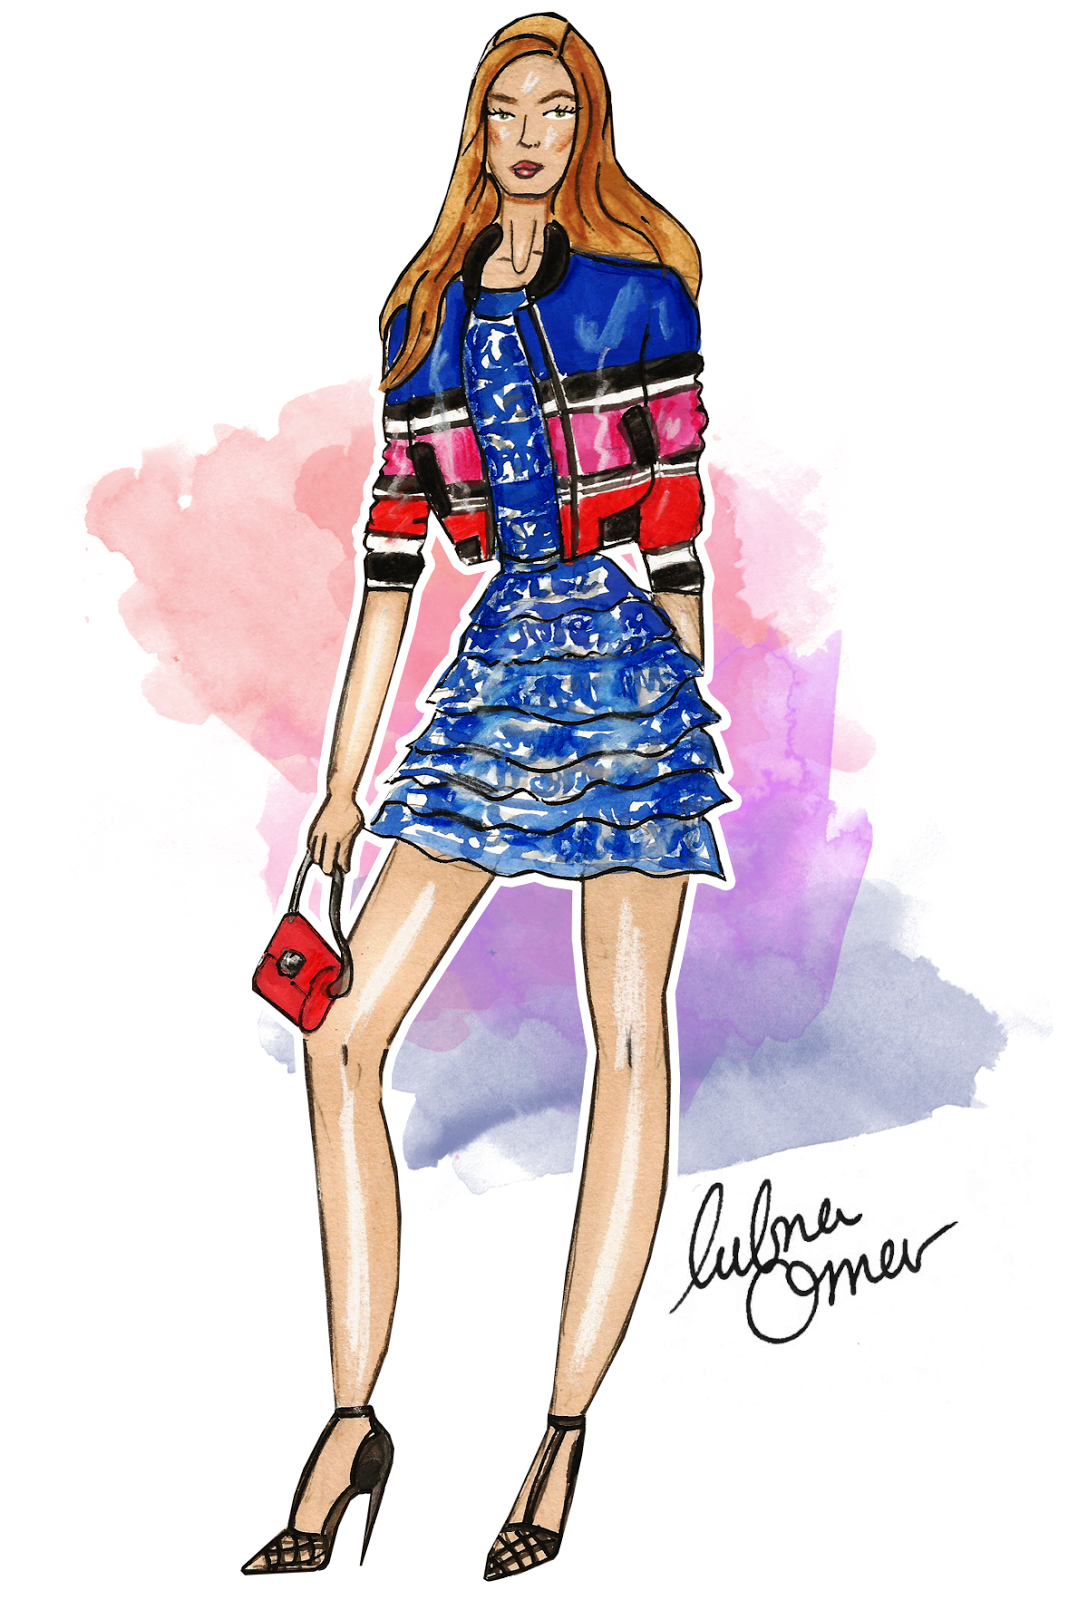 Gigi Hadid in Elie Saab SS16 illustration by Lubna Omar